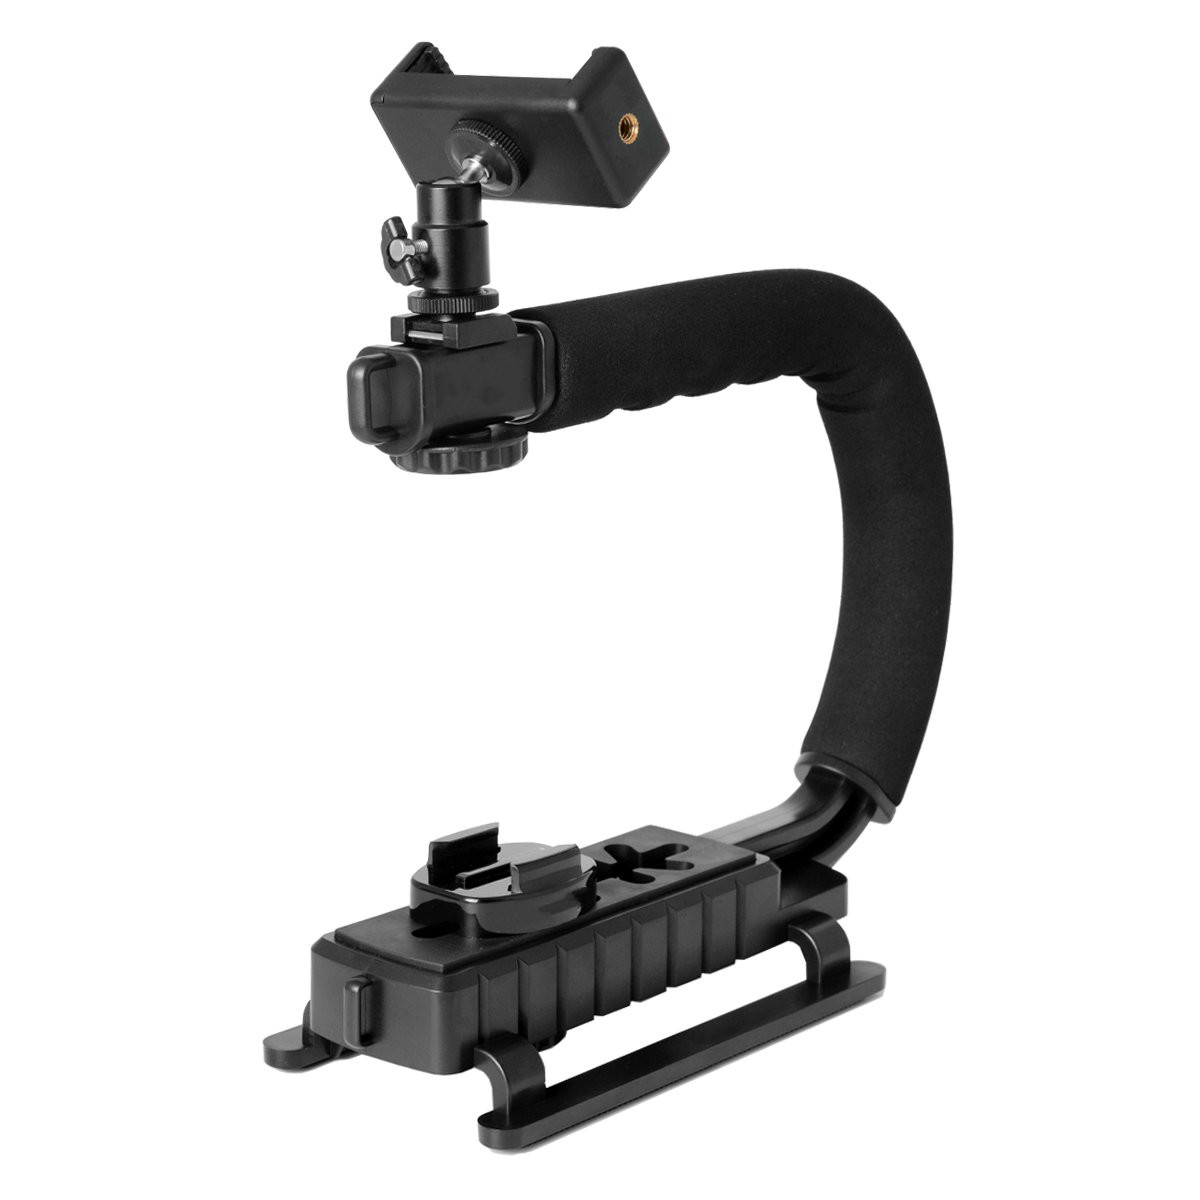 U-Rig Handheld Phone Stabilizing Photography Video Rig Film Making Vlogging Recording Case Bracket Stabilizer For IPhone Samsung